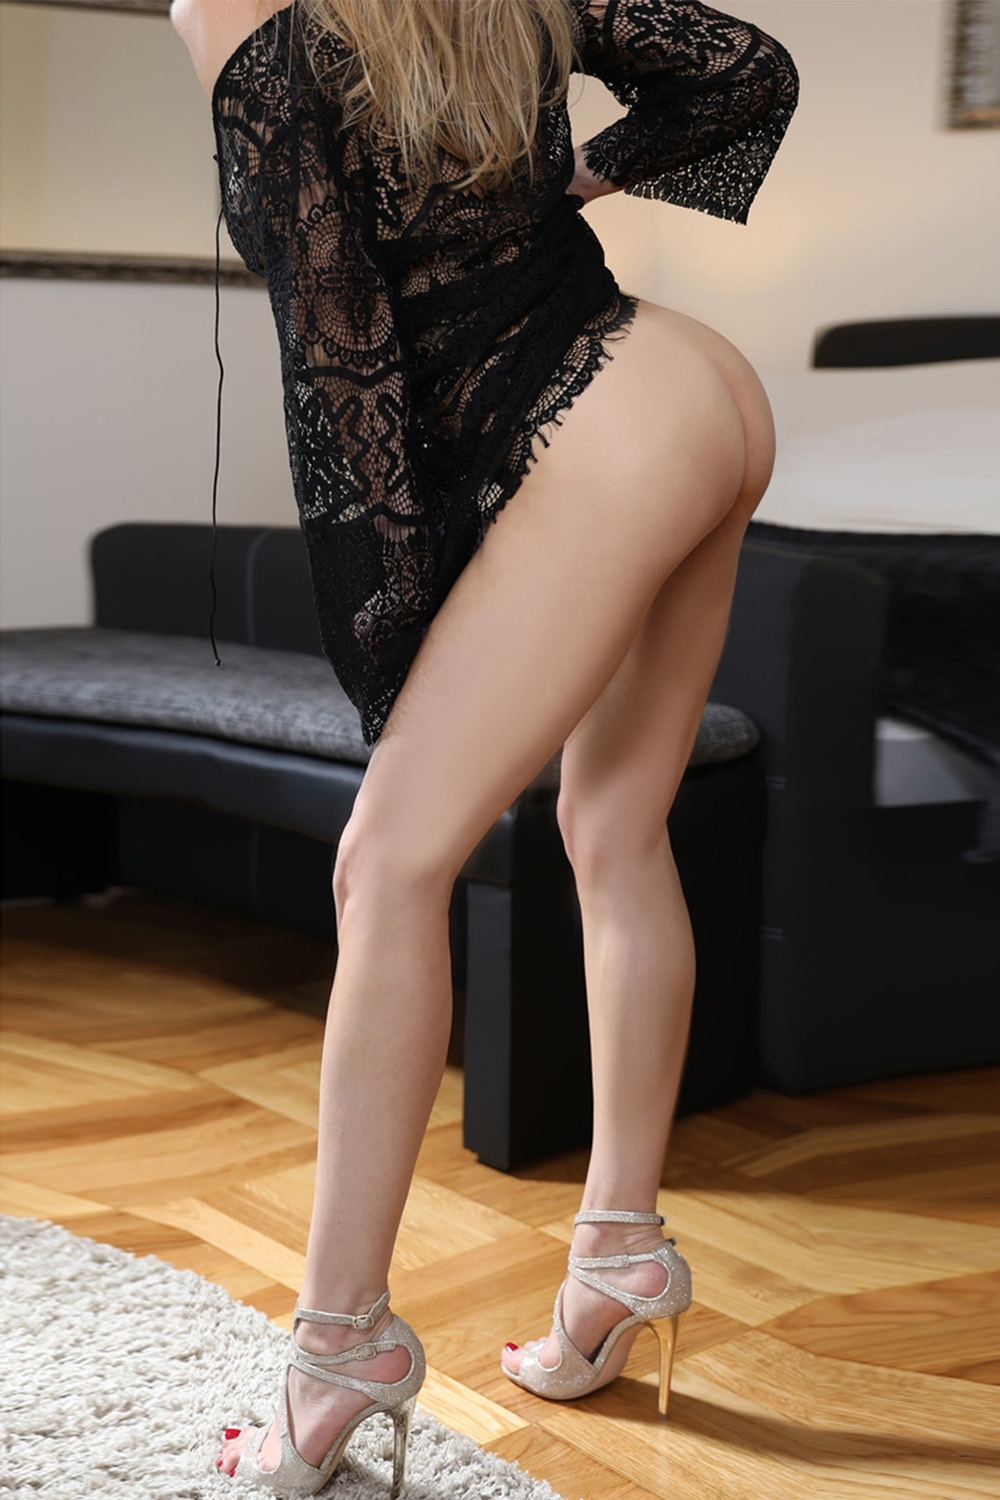 lydie-dreams-escorte-geneve-dubai-vip-geneva-milan-agence-internationale-3.jpg